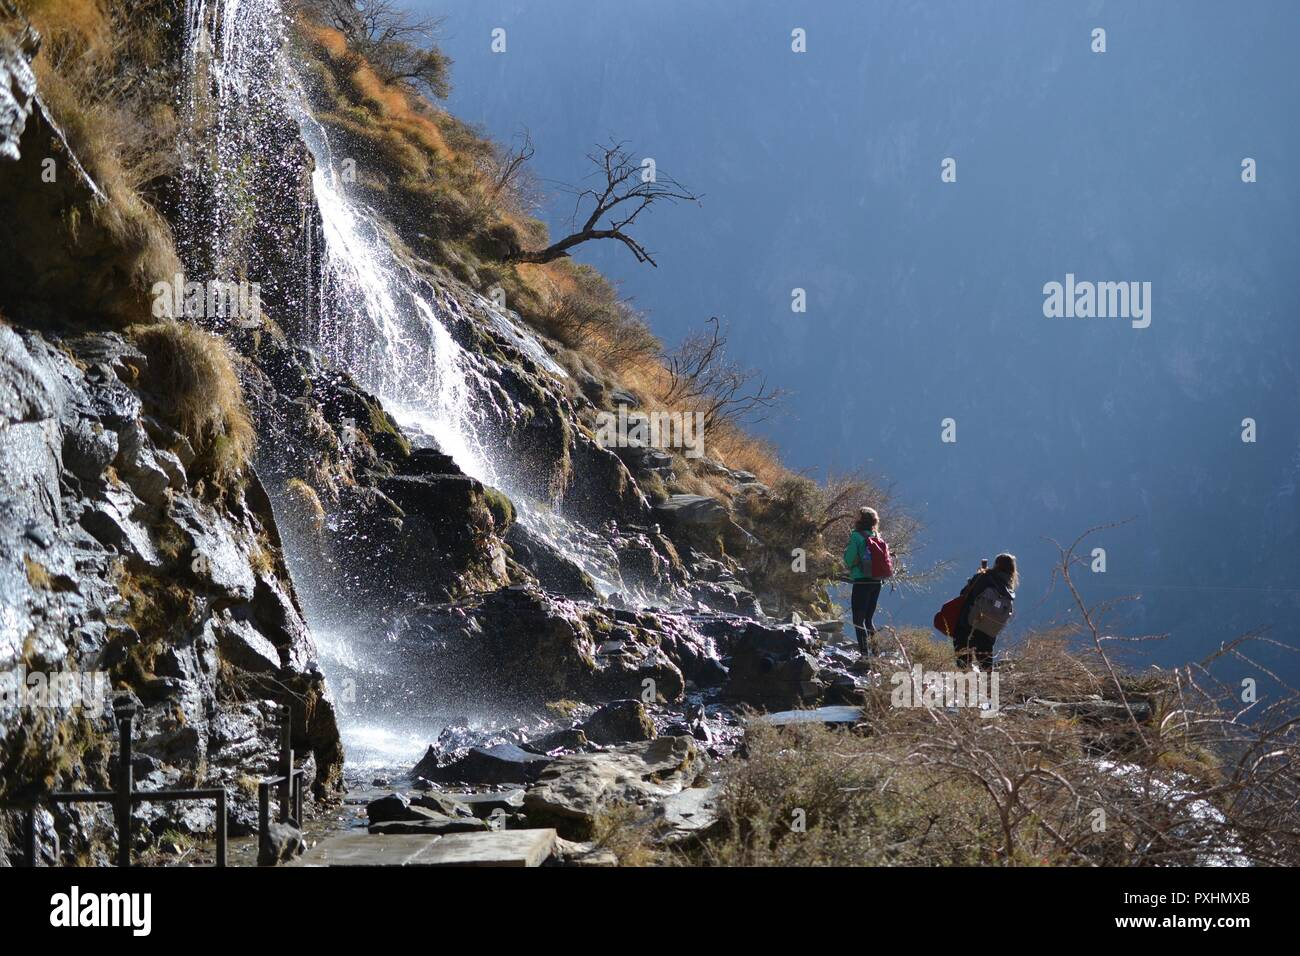 Hiking in Tiger Leaping Gorge. Mountains and river. Between Xianggelila and Lijiang City, Yunnan Province, Tibet, China. - Stock Image